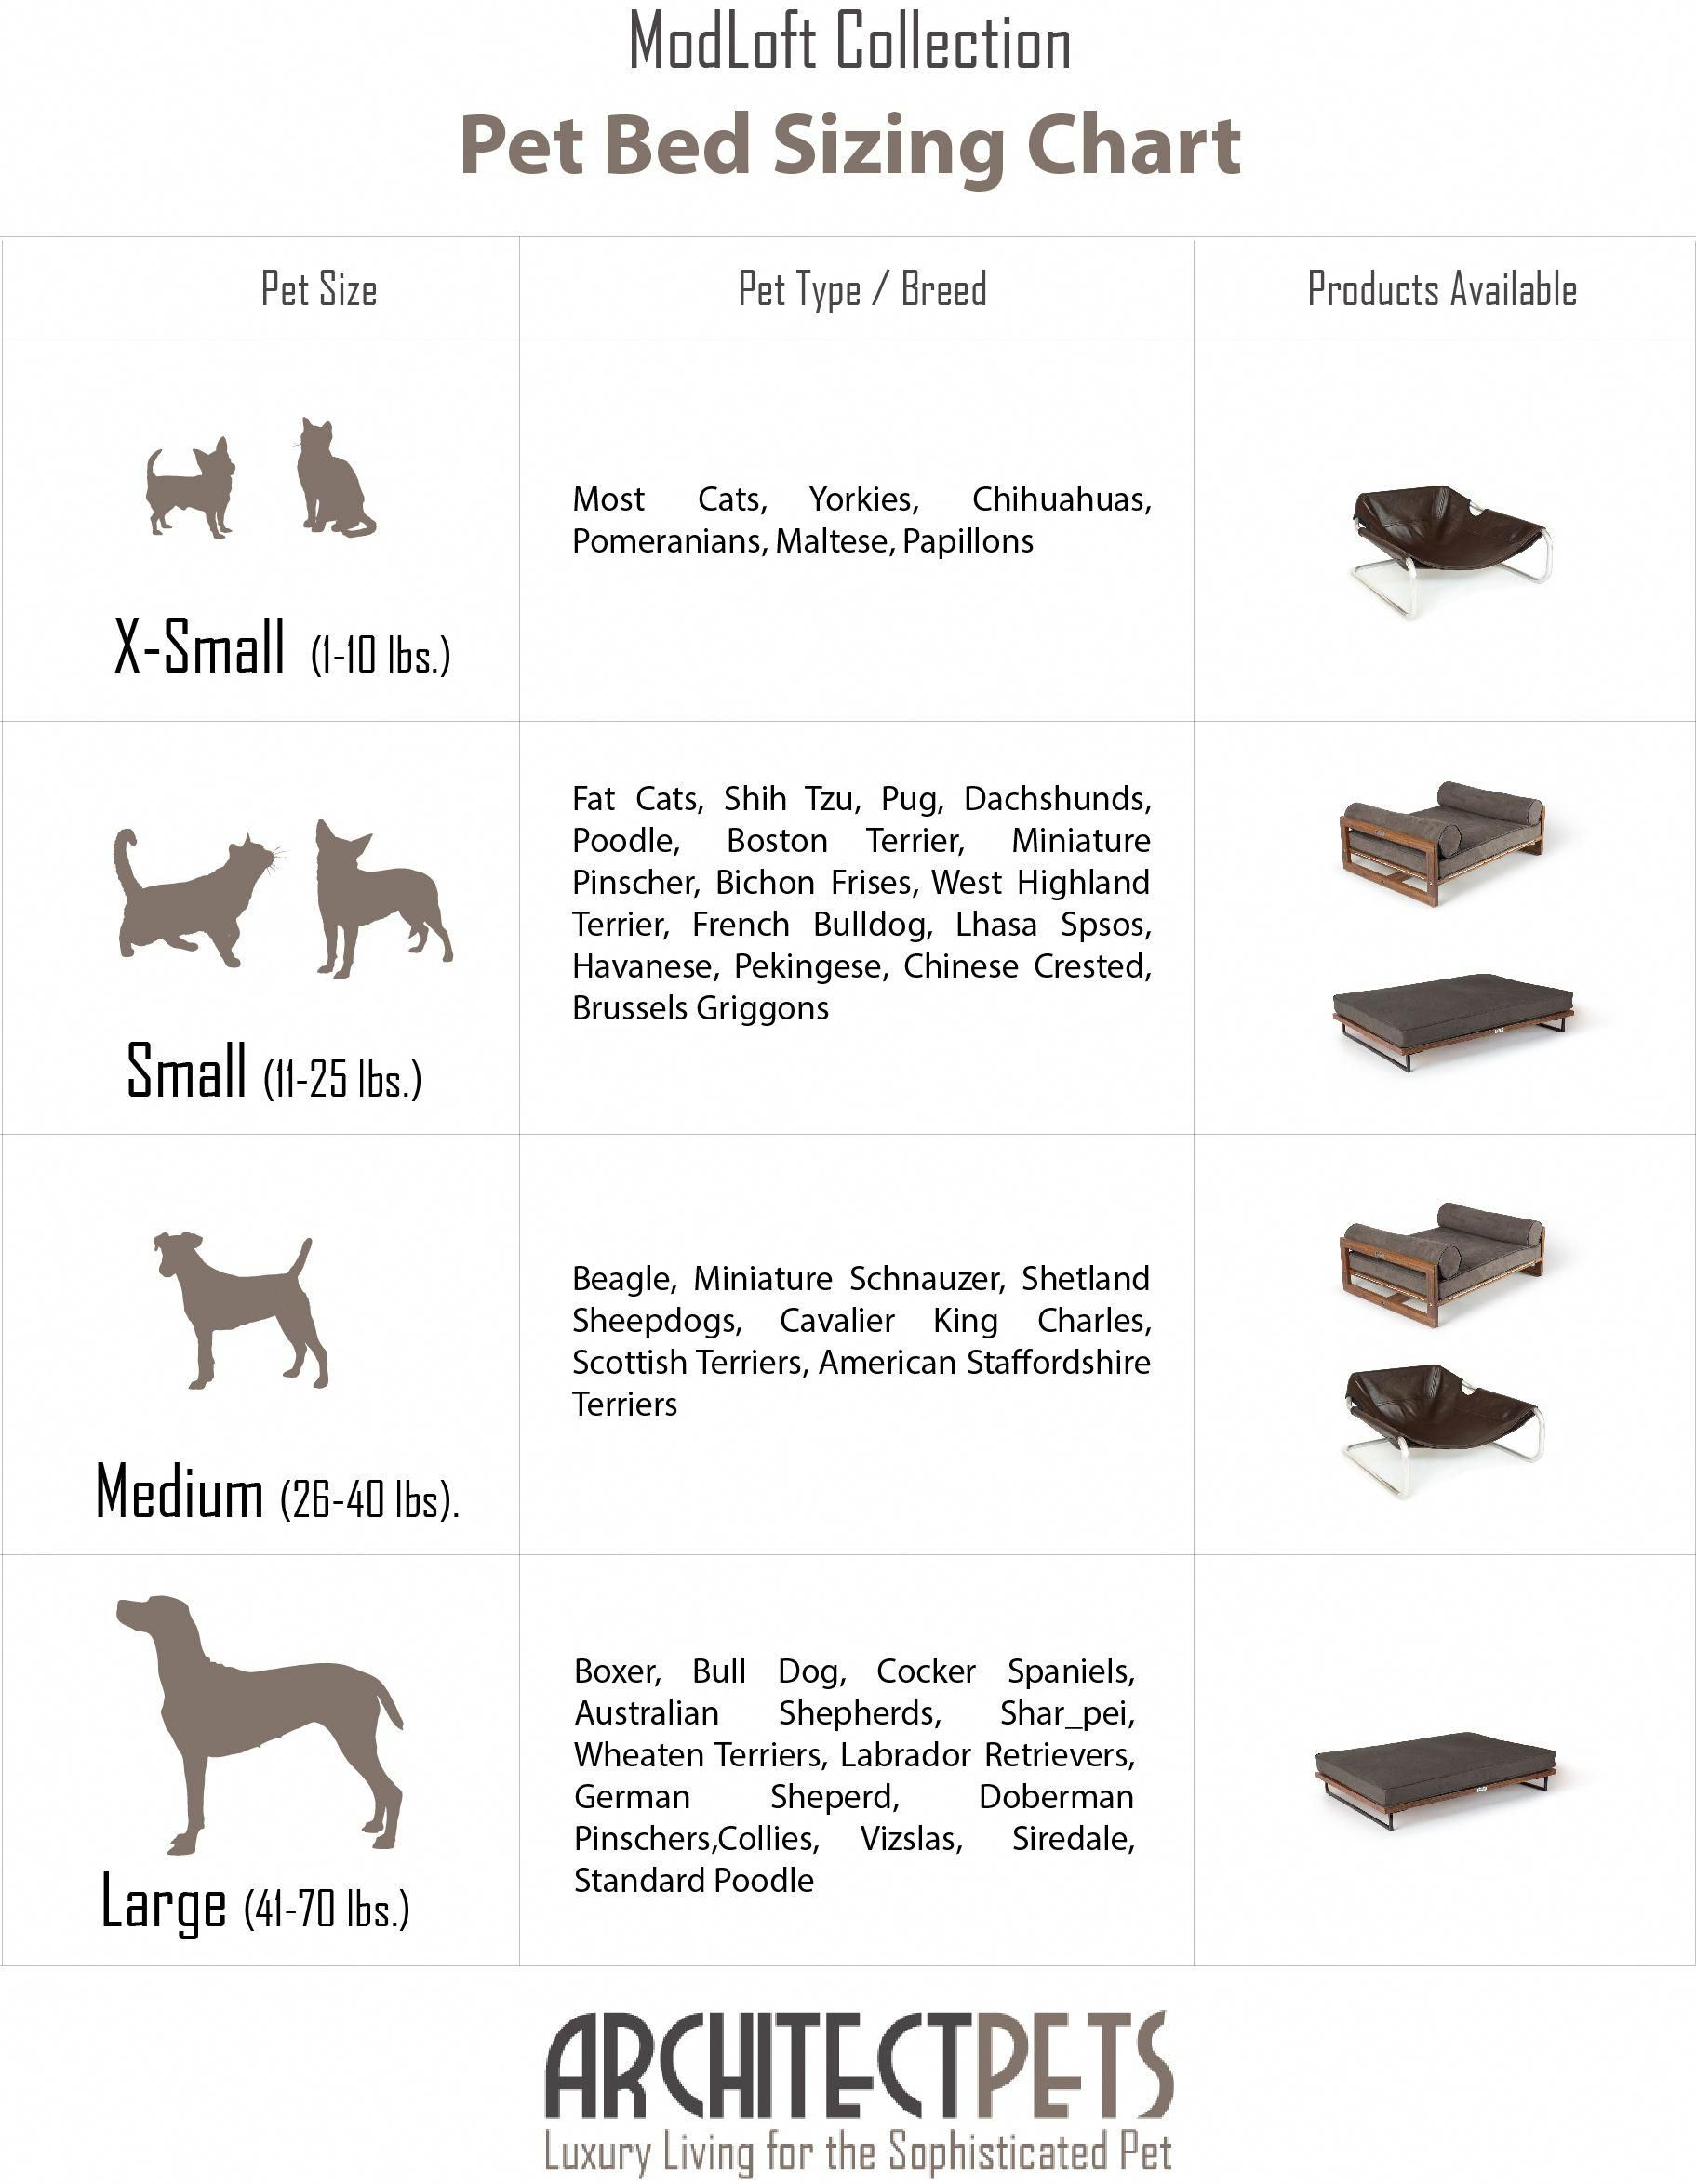 Architect Pets Pet Bed Sizing Chart Murphybedideasikeaqueensize Pet Bed West Highland Terrier Bed Size Charts